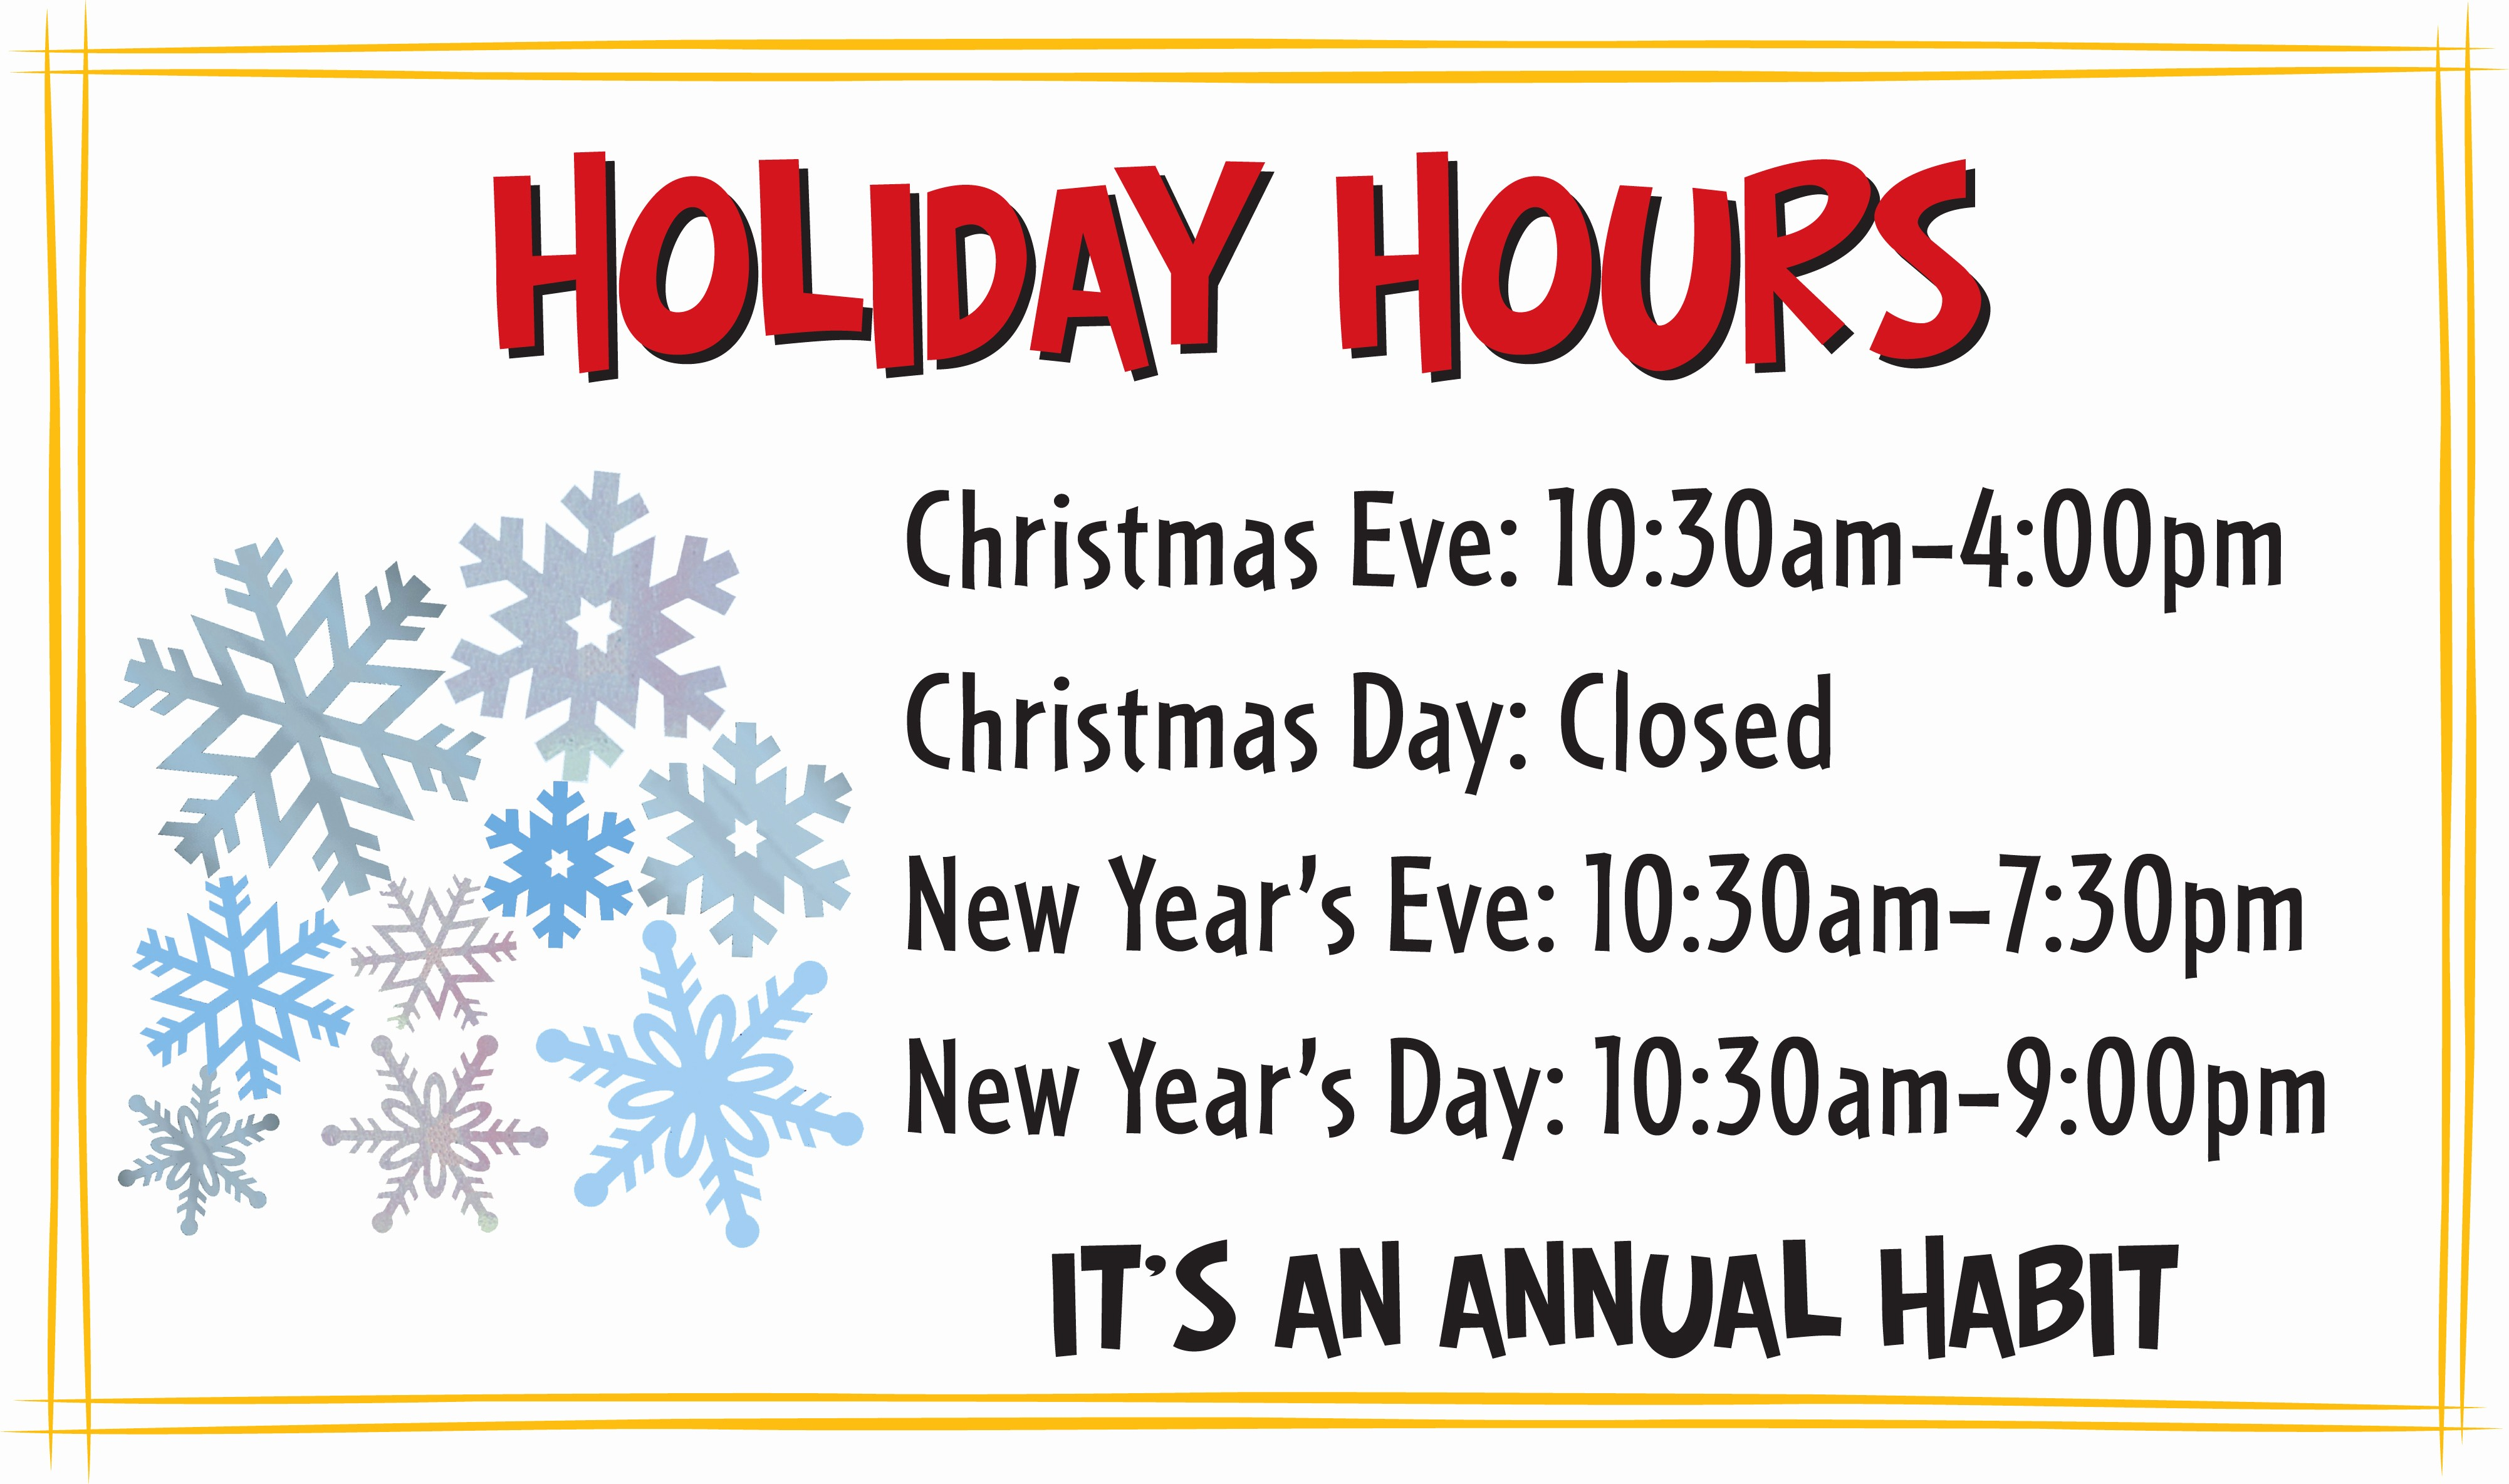 Office Closed for Holiday Sign Unique Free Holiday Closed Office Signs Video Search Engine at